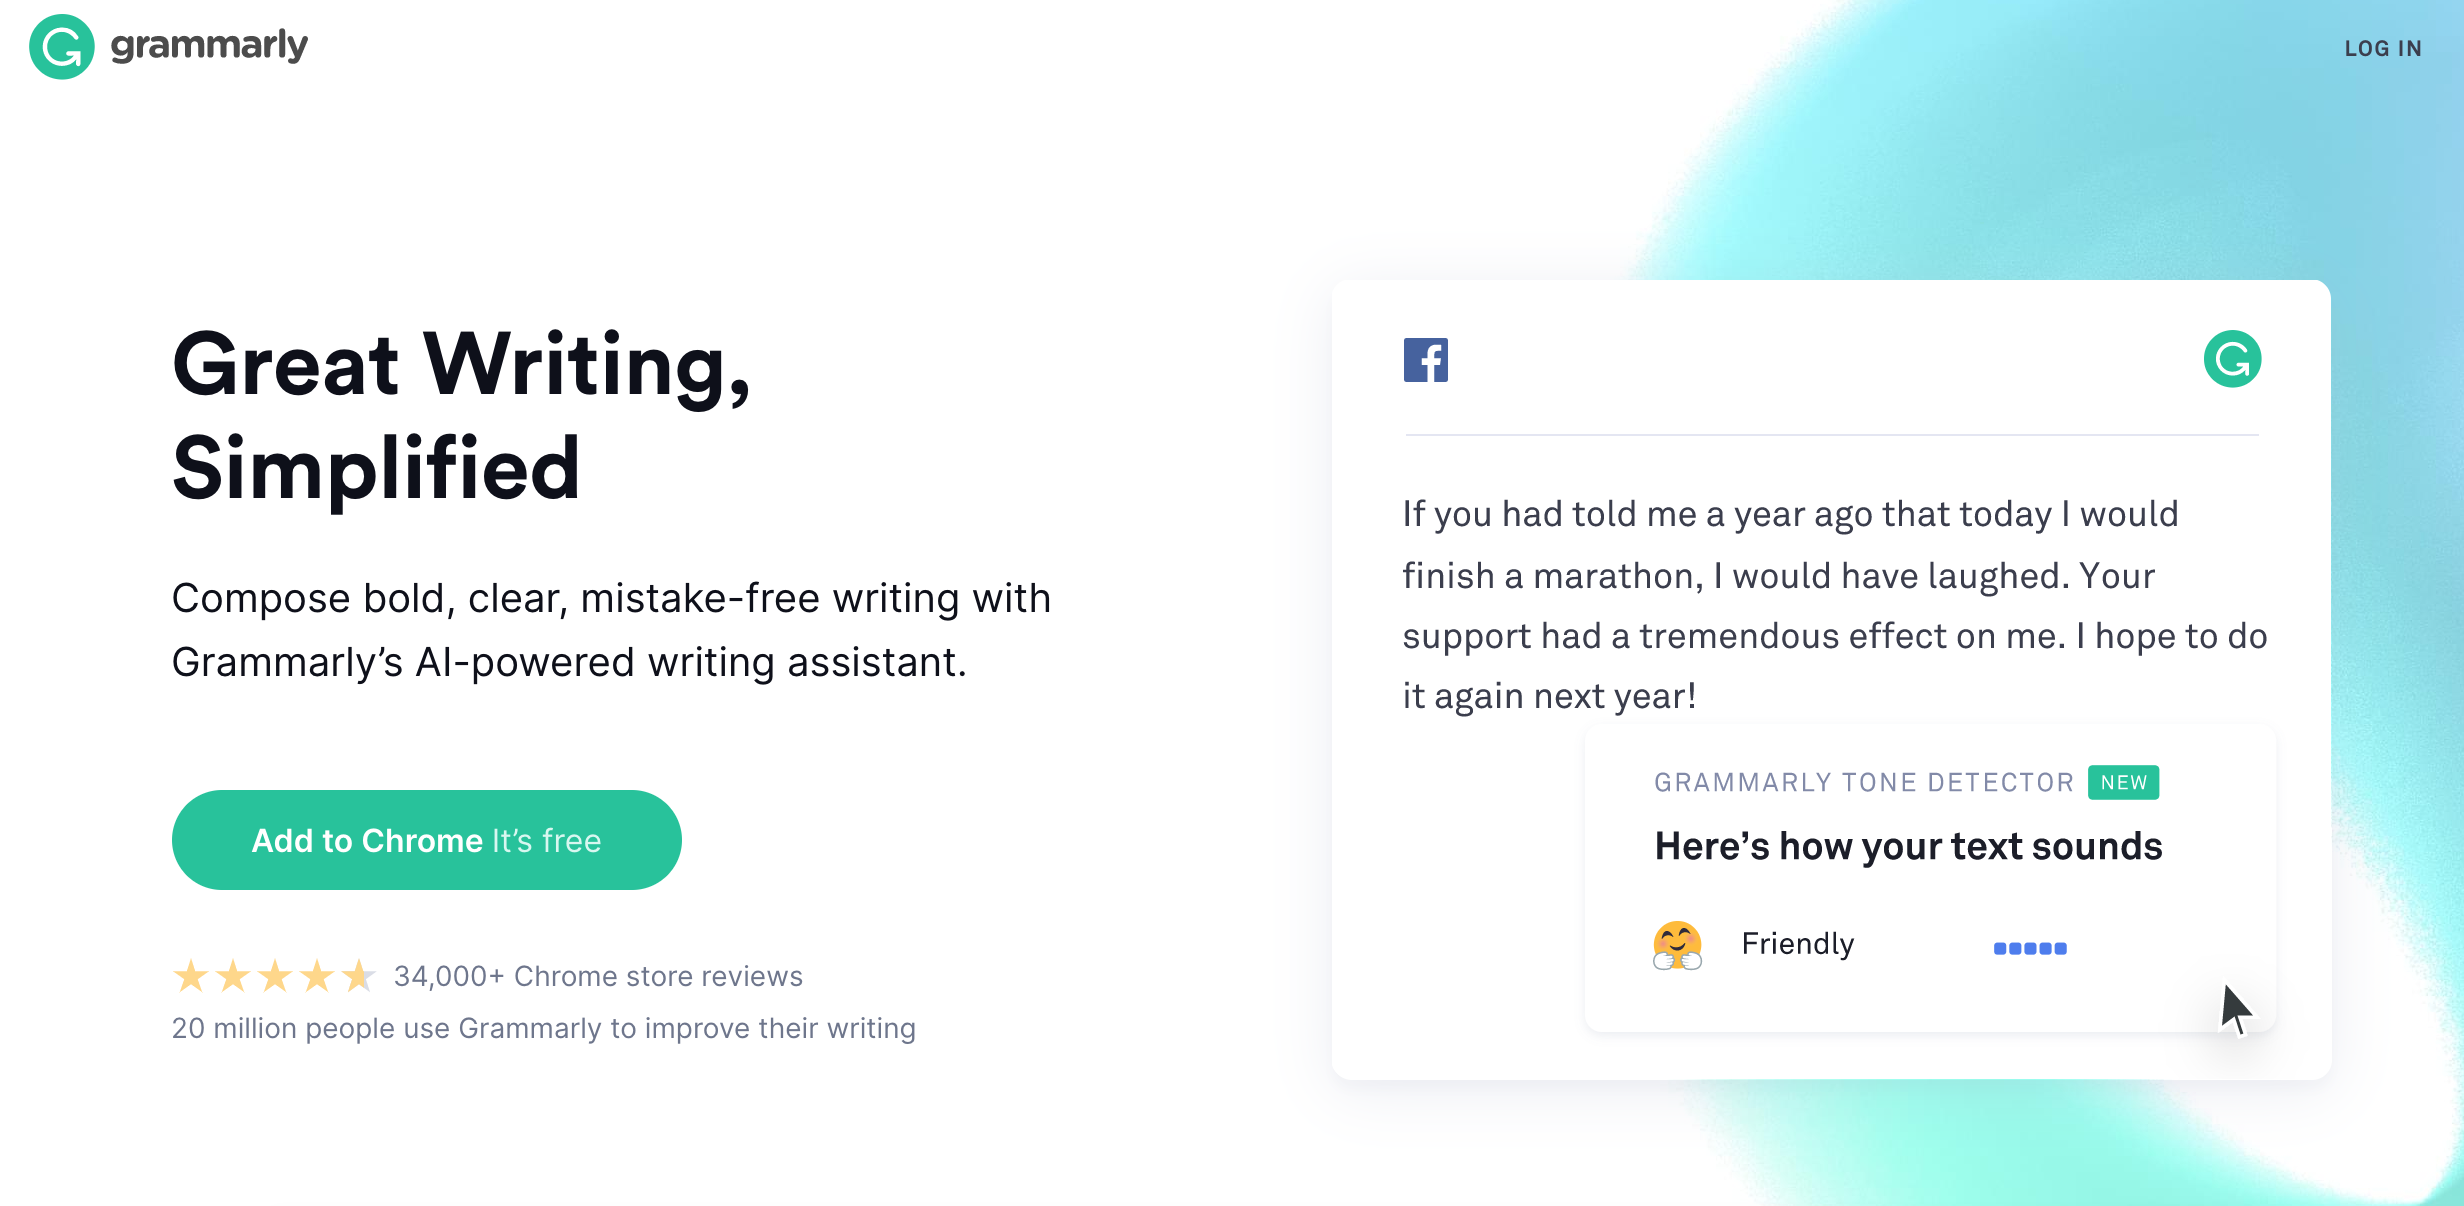 Screenshot of grammarly.com website that checks your English grammar, punctuation, writing style.